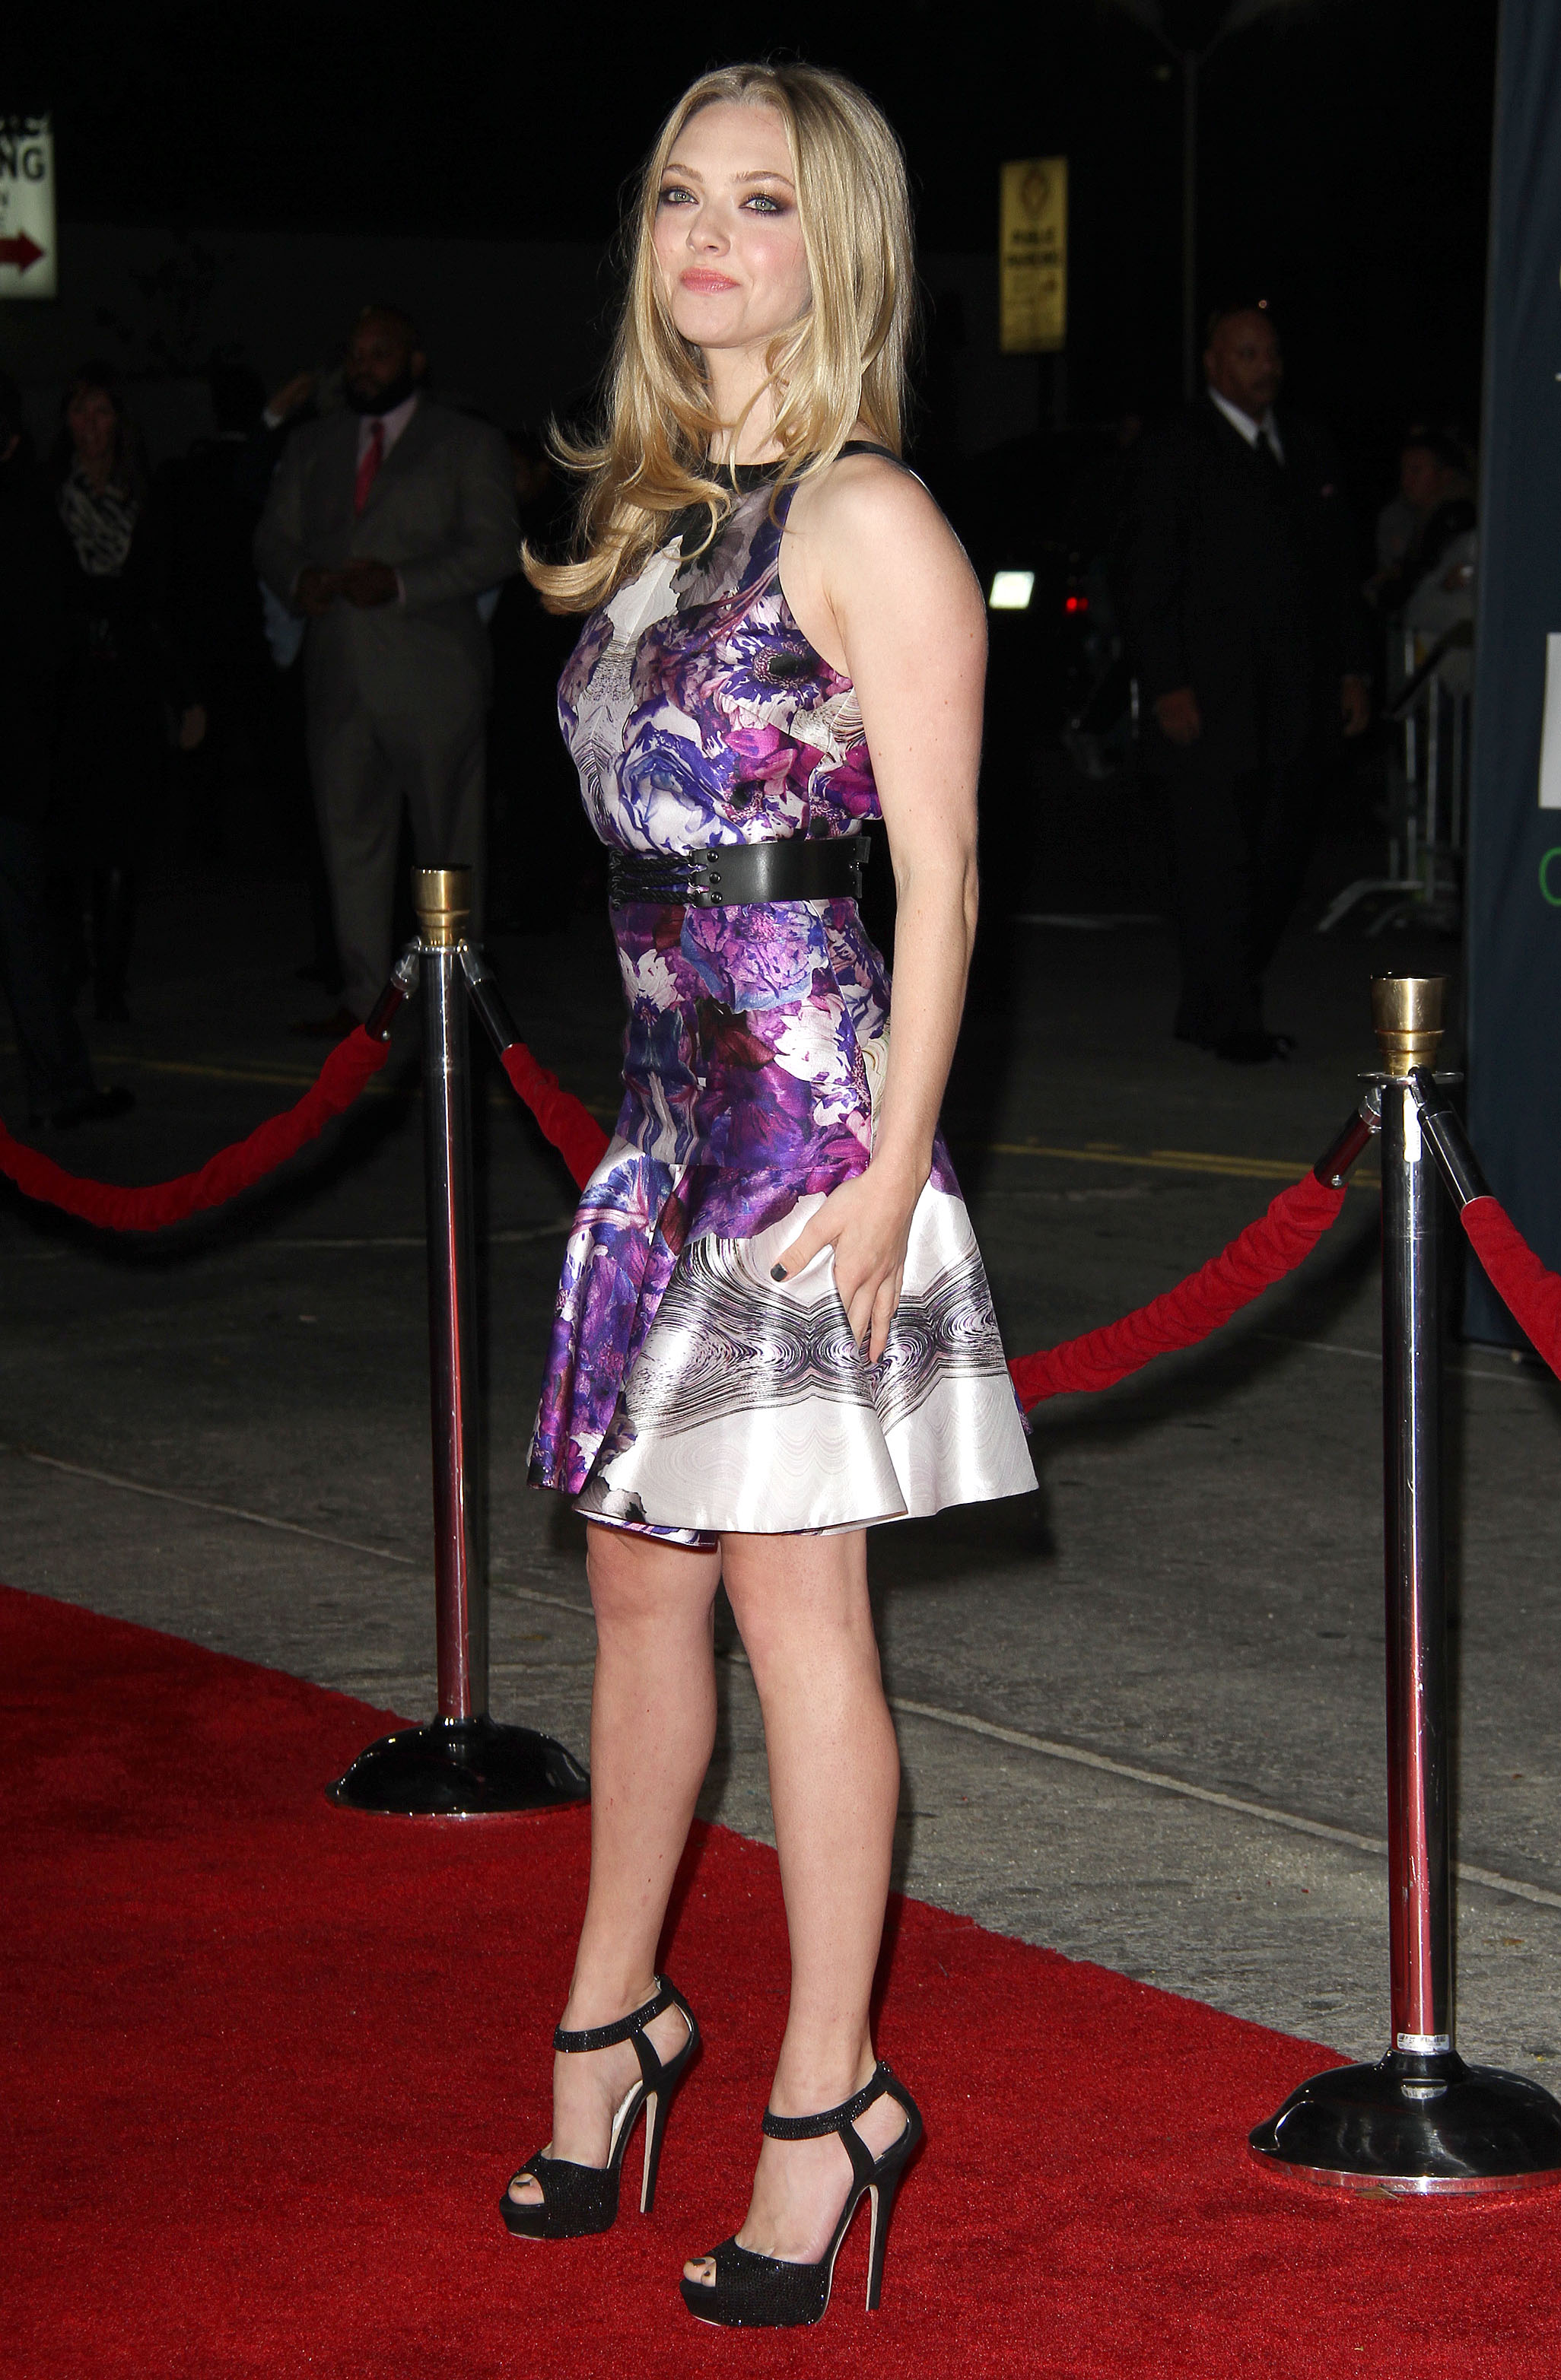 Amanda Seyfried Leggy Candids At In Time Premiere 03